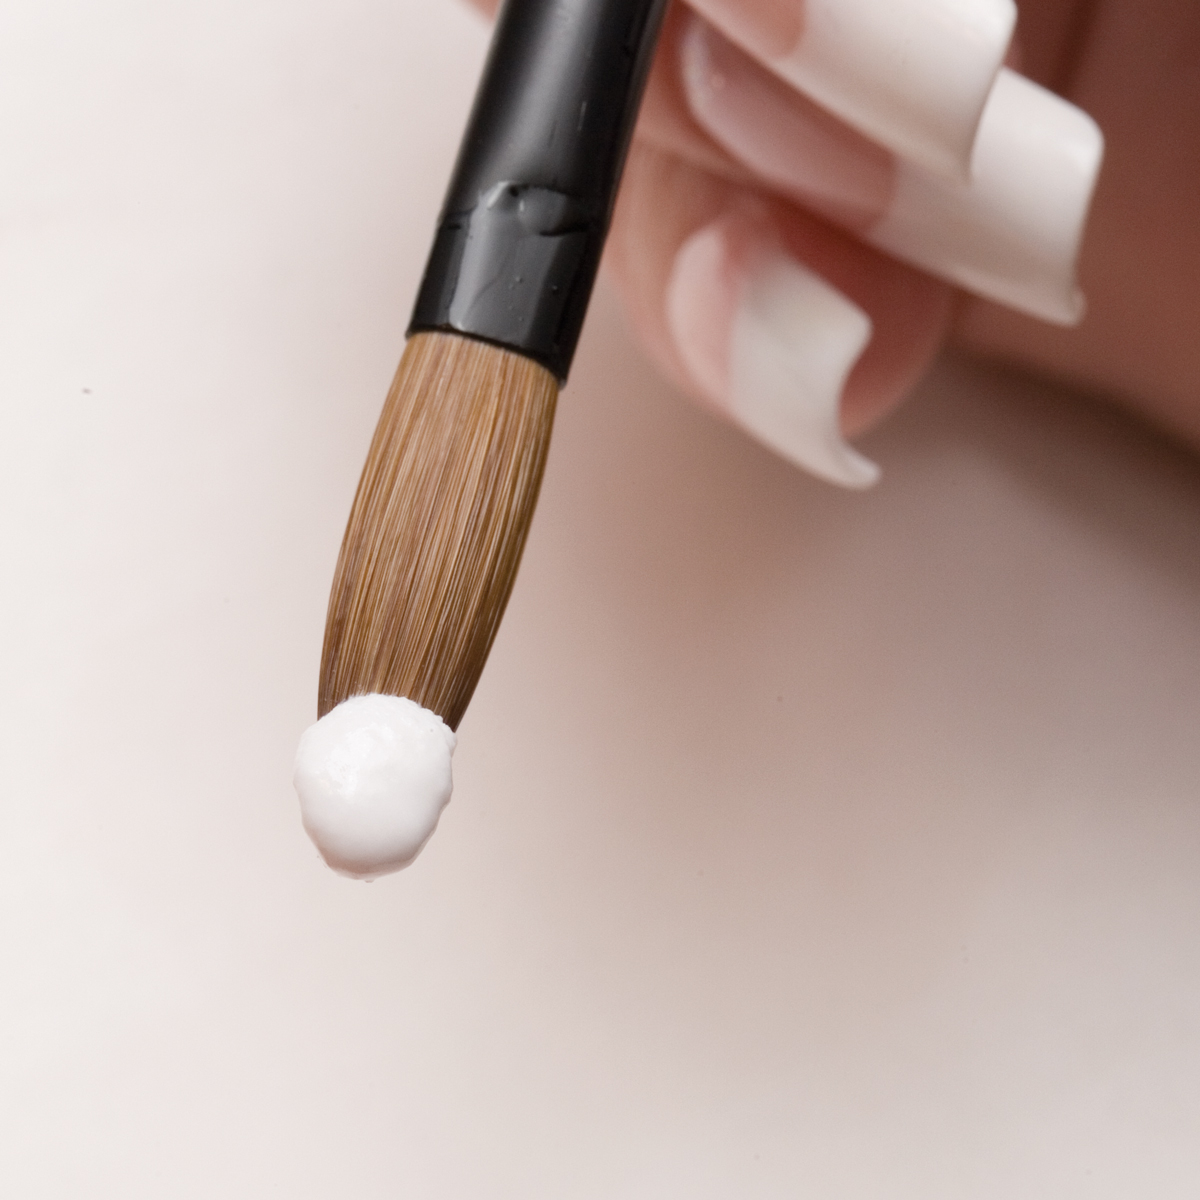 4 Expert Tips for Working with Acrylics